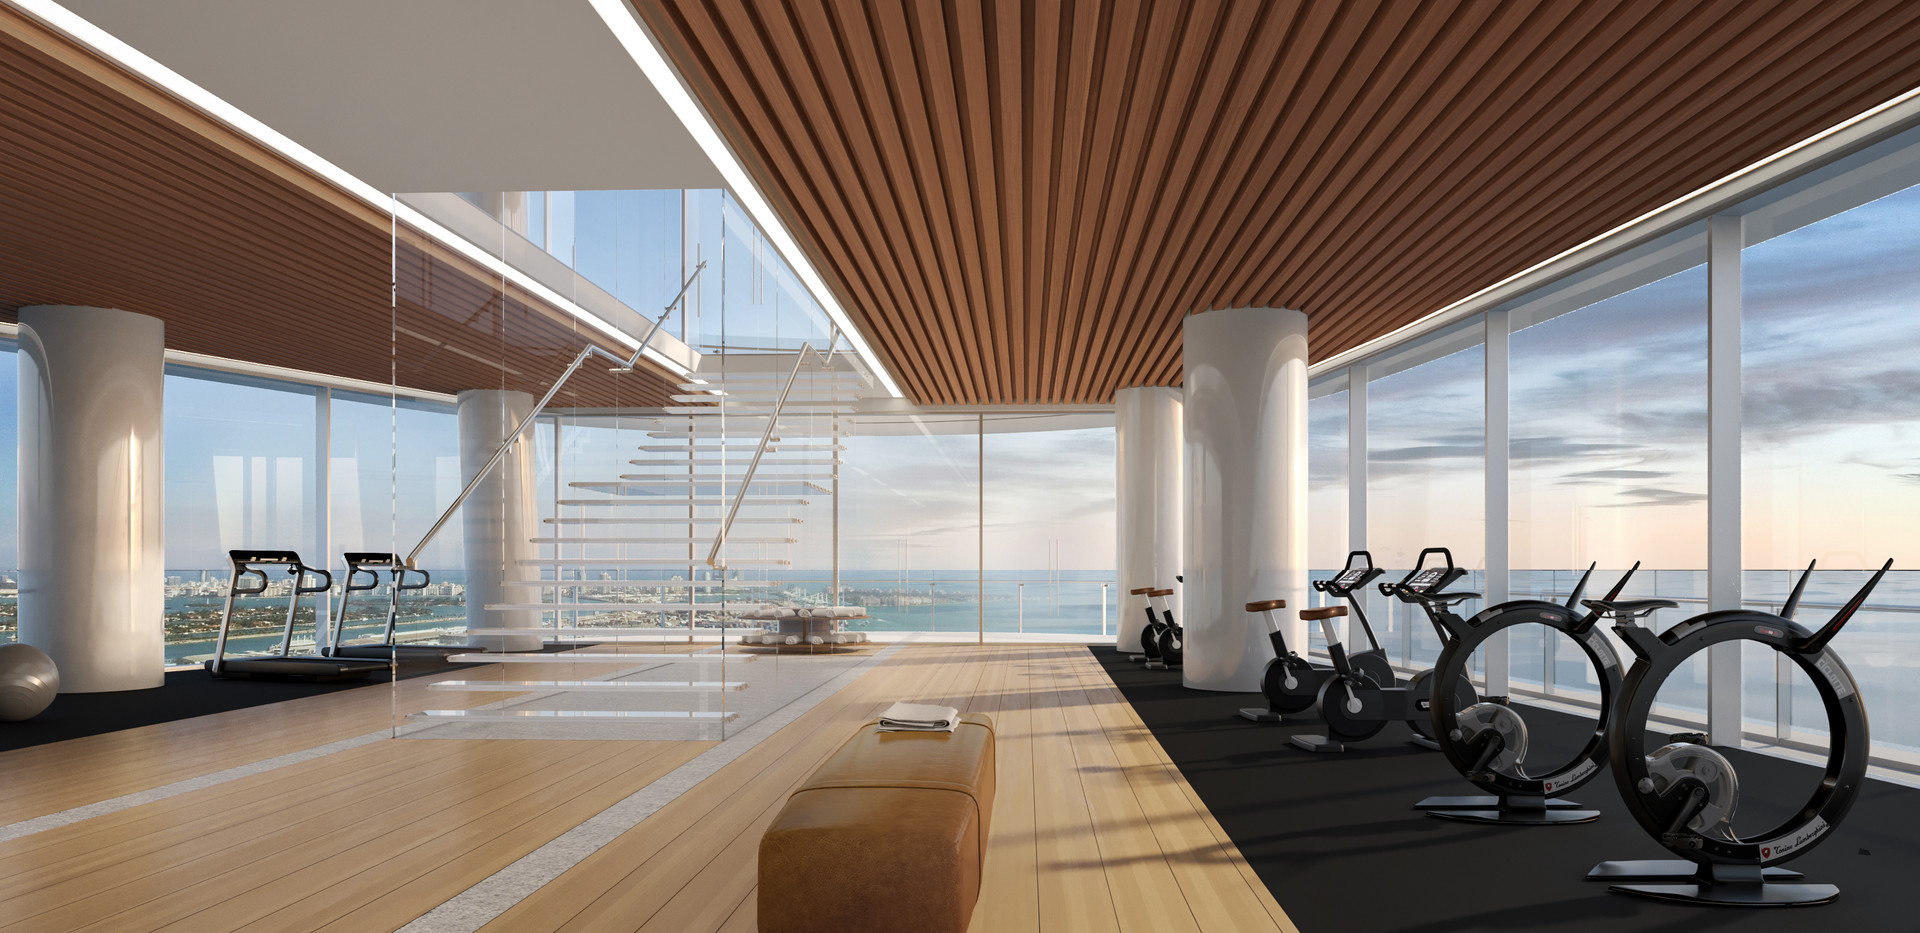 Gym from main entrance